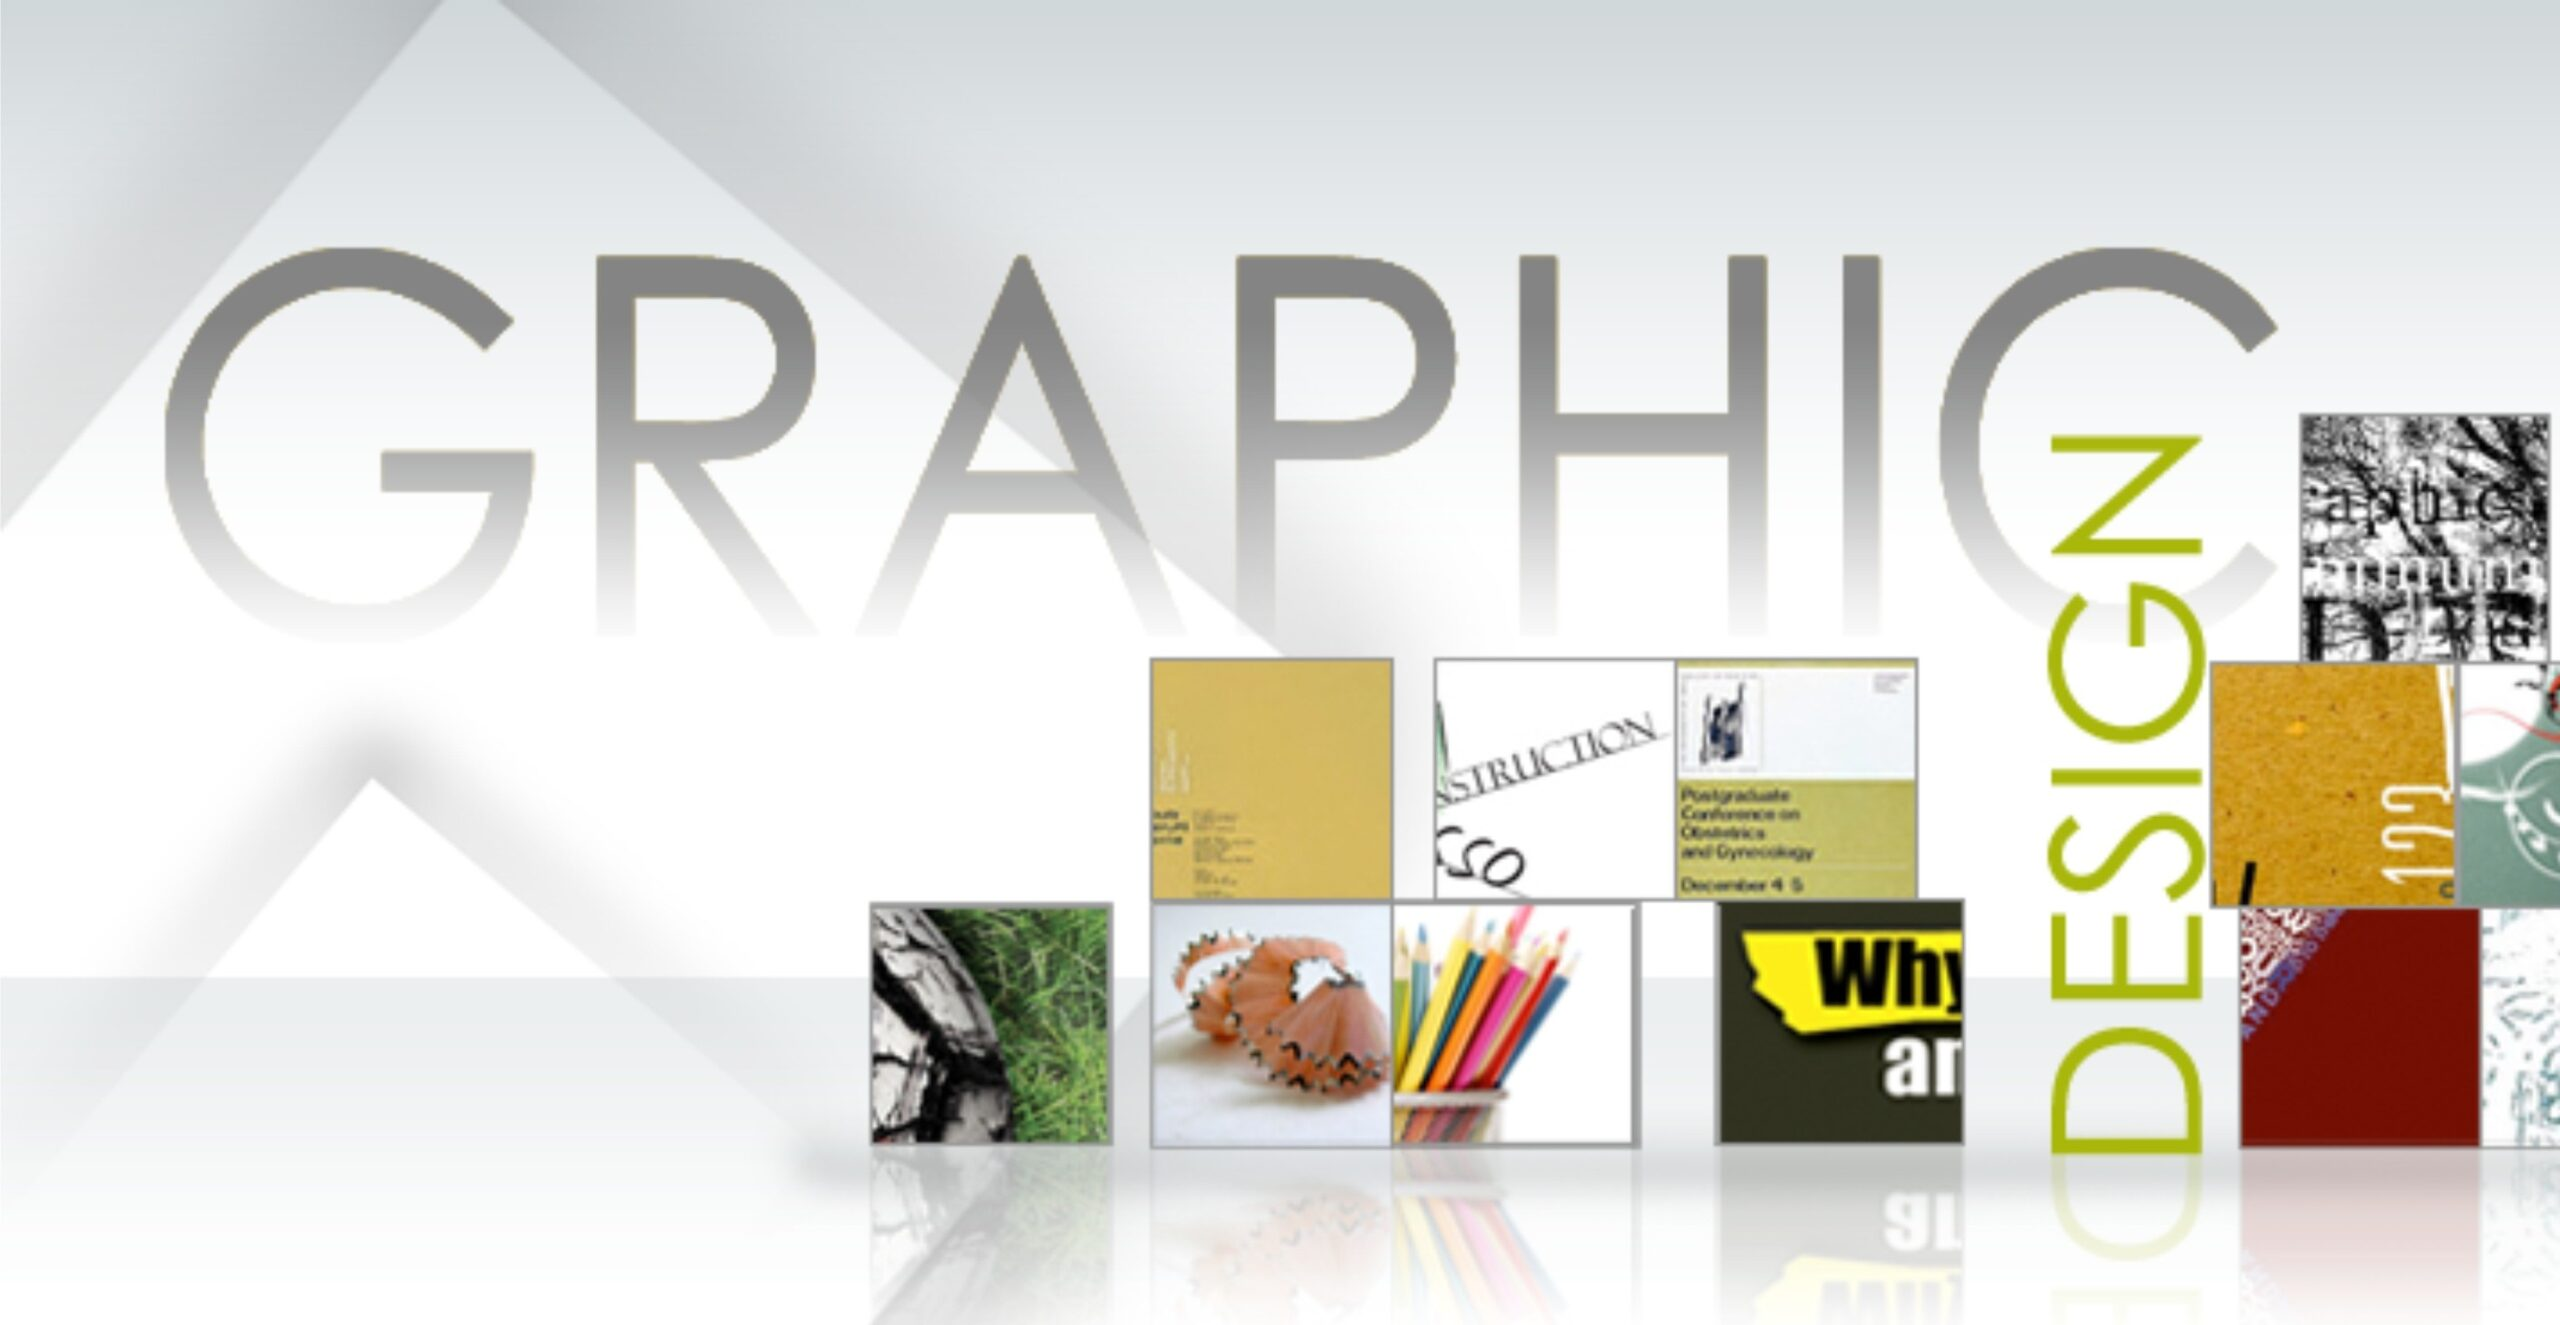 Things to Look While Choosing a Graphic Design Service